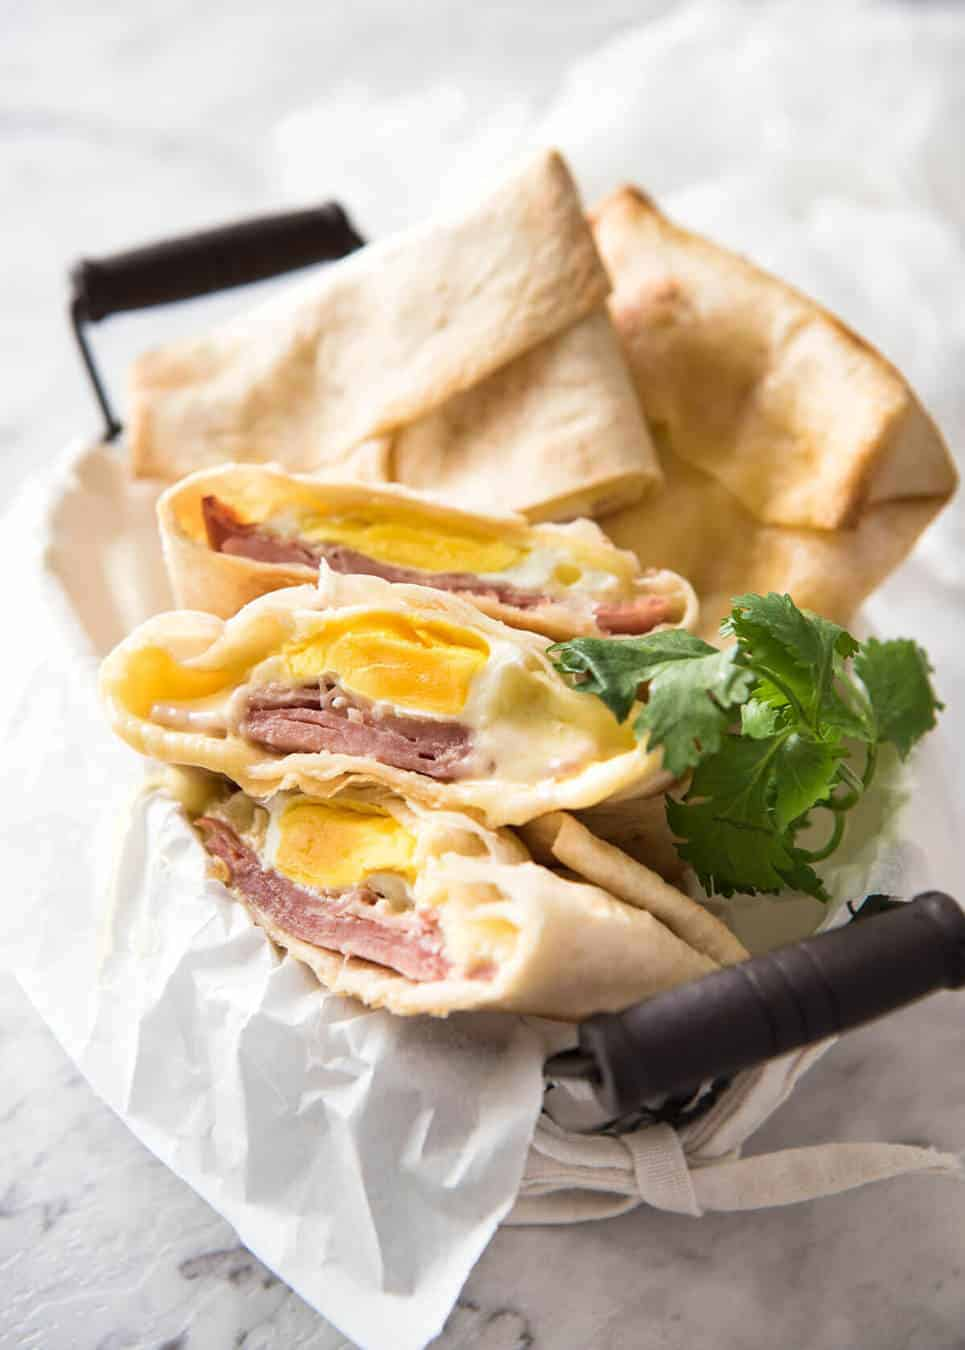 Hot Ham Egg And Cheese Pockets Made With Tortillas In A Basket Some